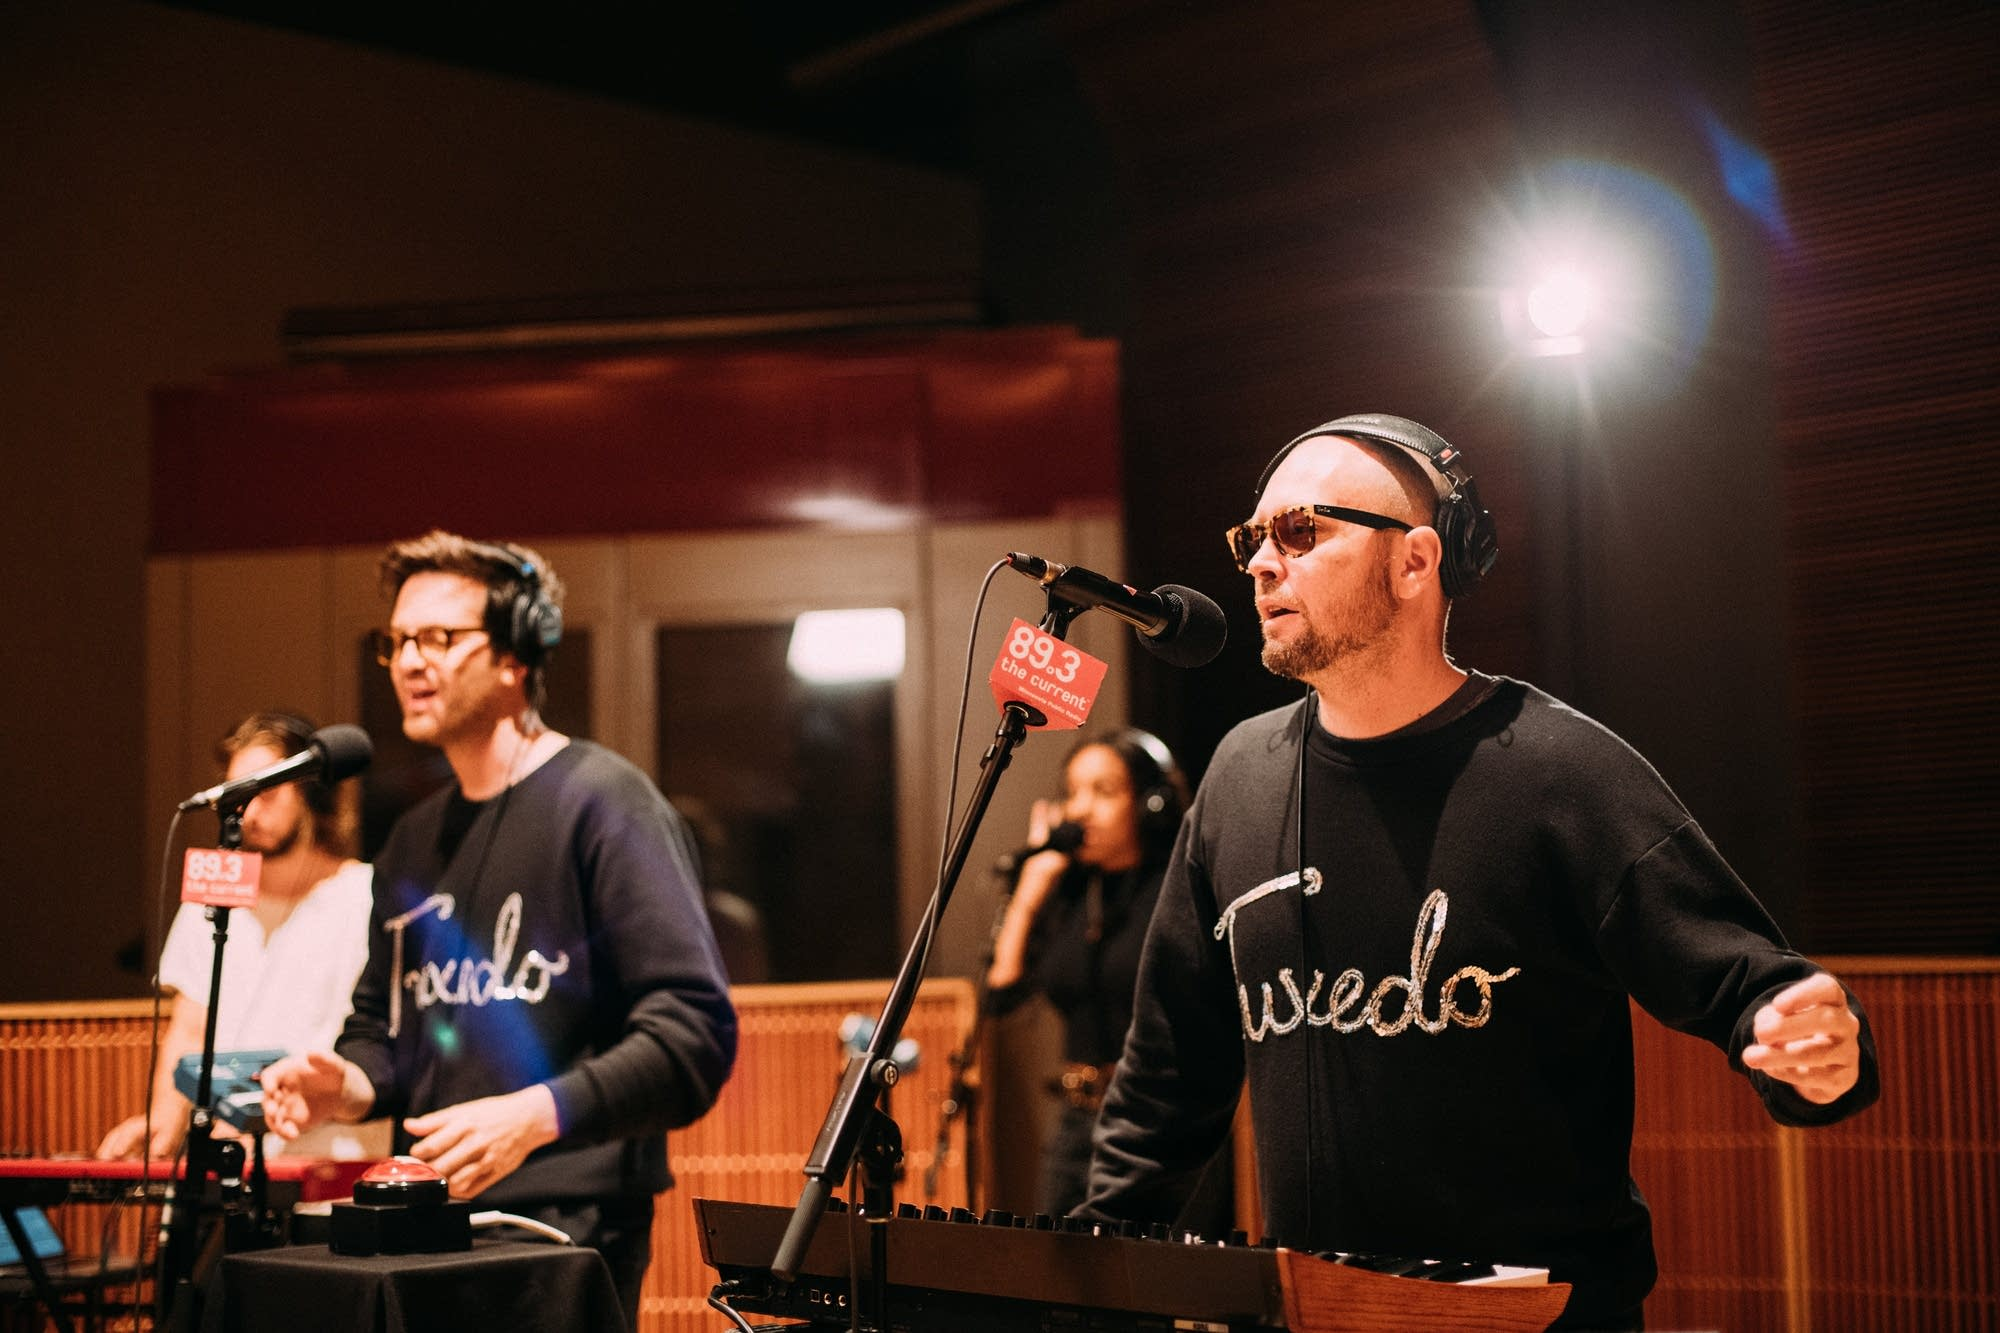 Tuxedo perform in The Current studio